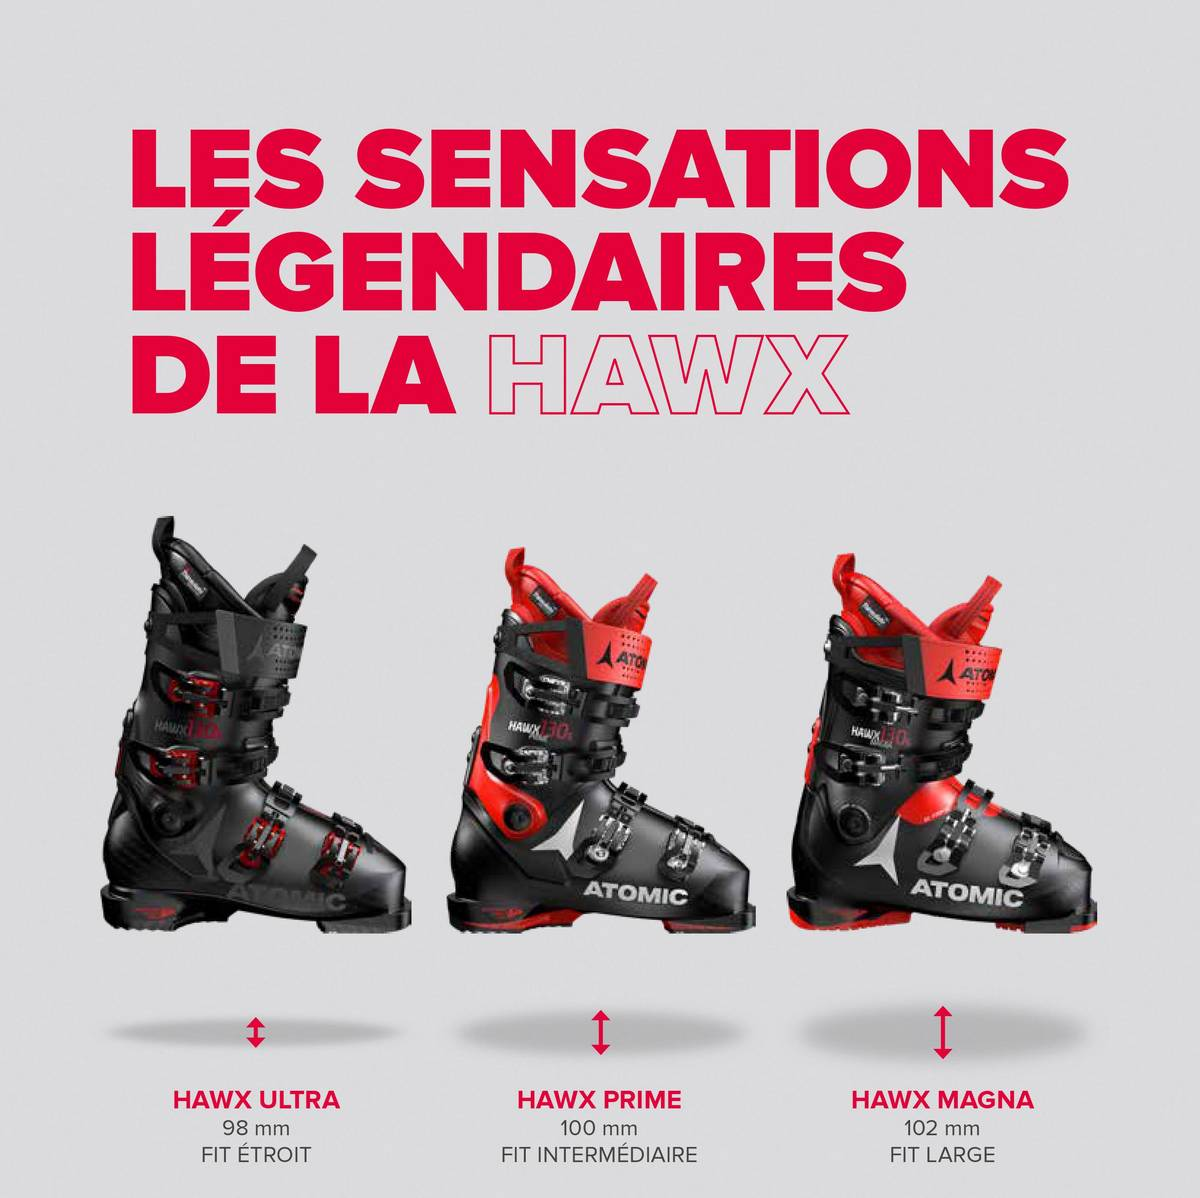 Chaussure de ski Atomic Hawx fit